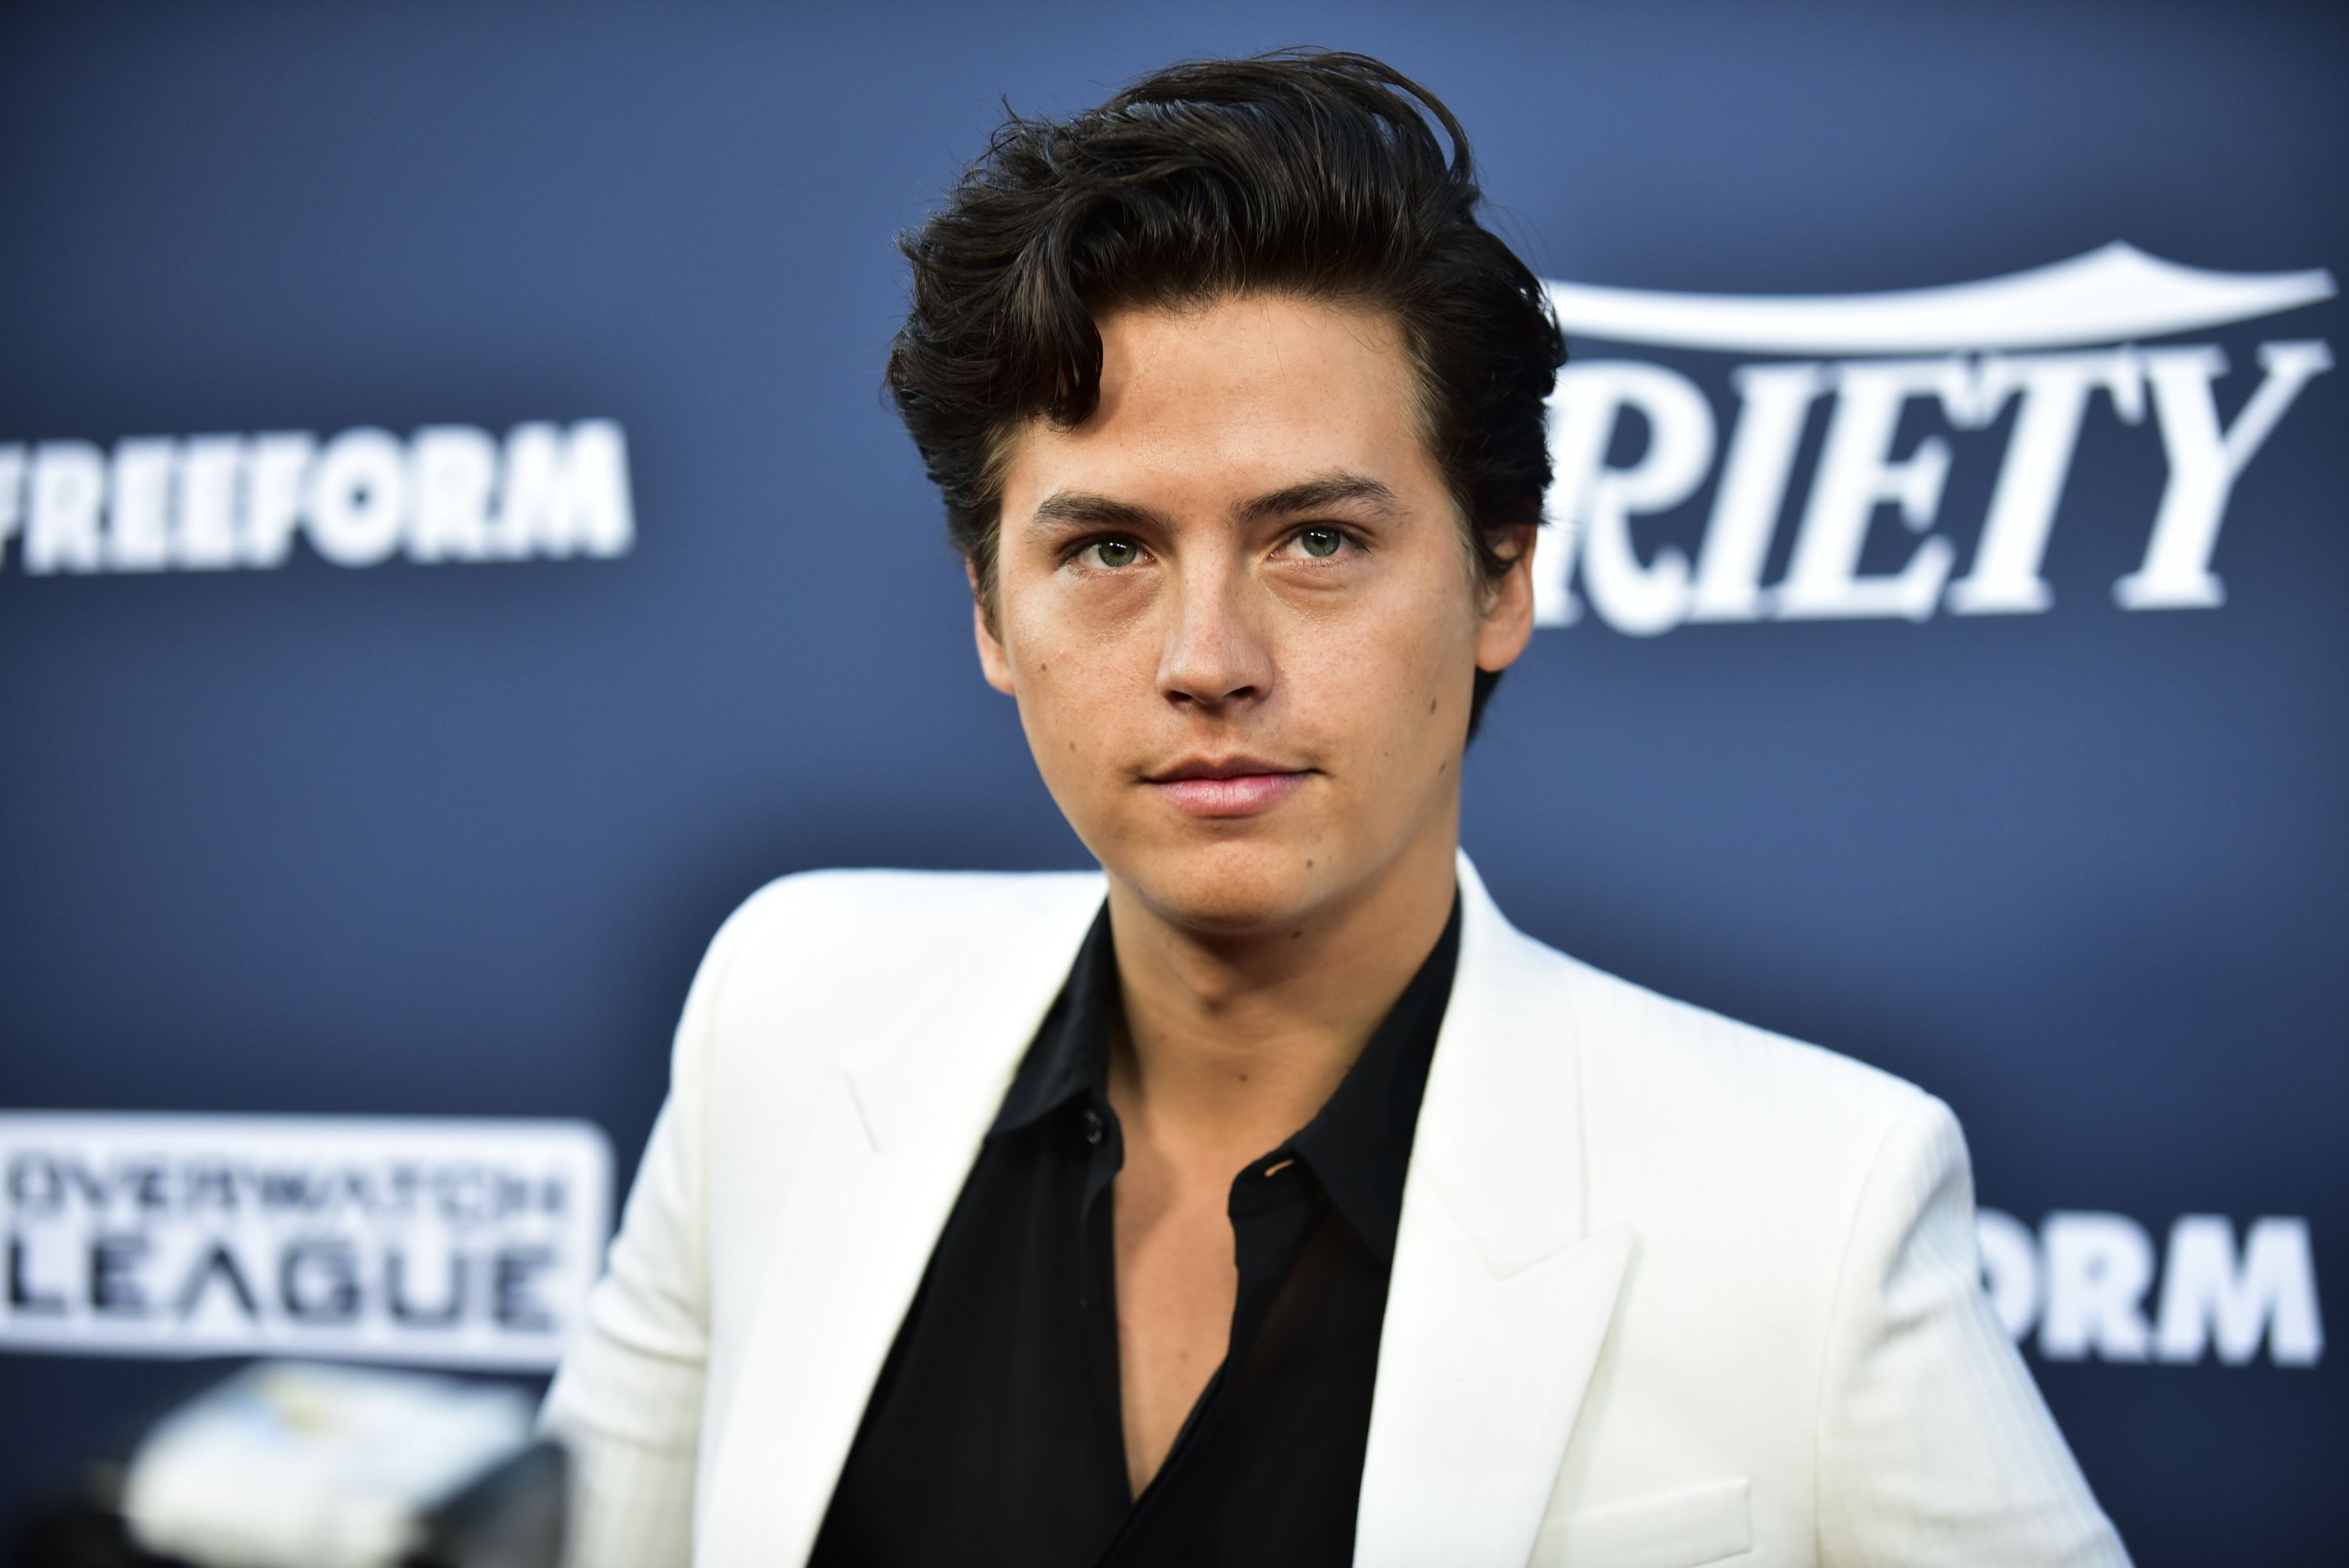 Cole Sprouse speaks out after allegations of sexual assault